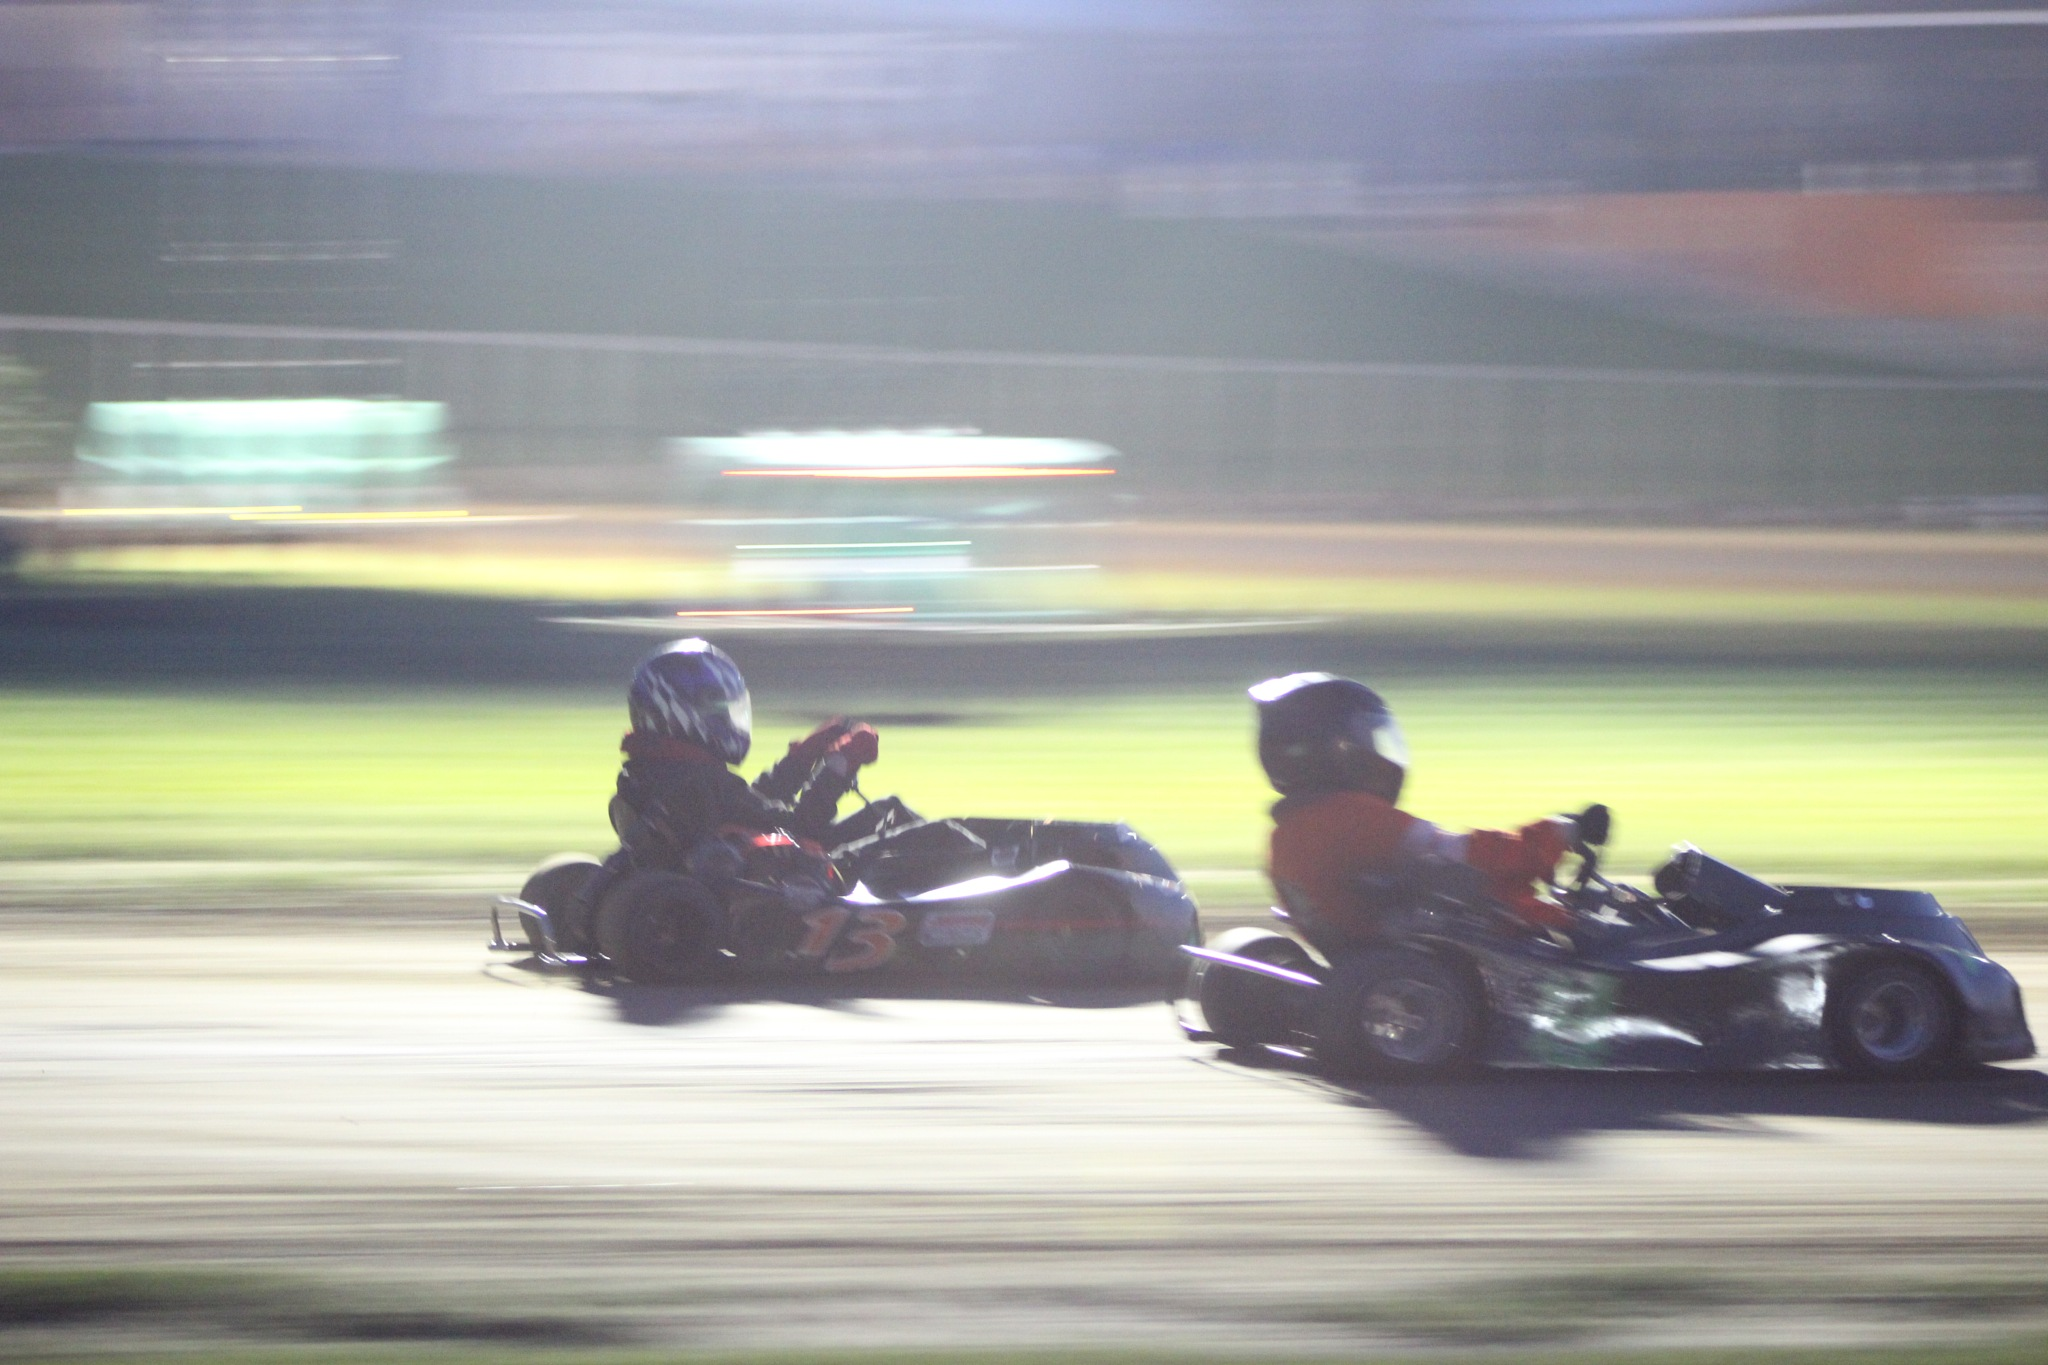 Go Karts by Chaotic Beauty